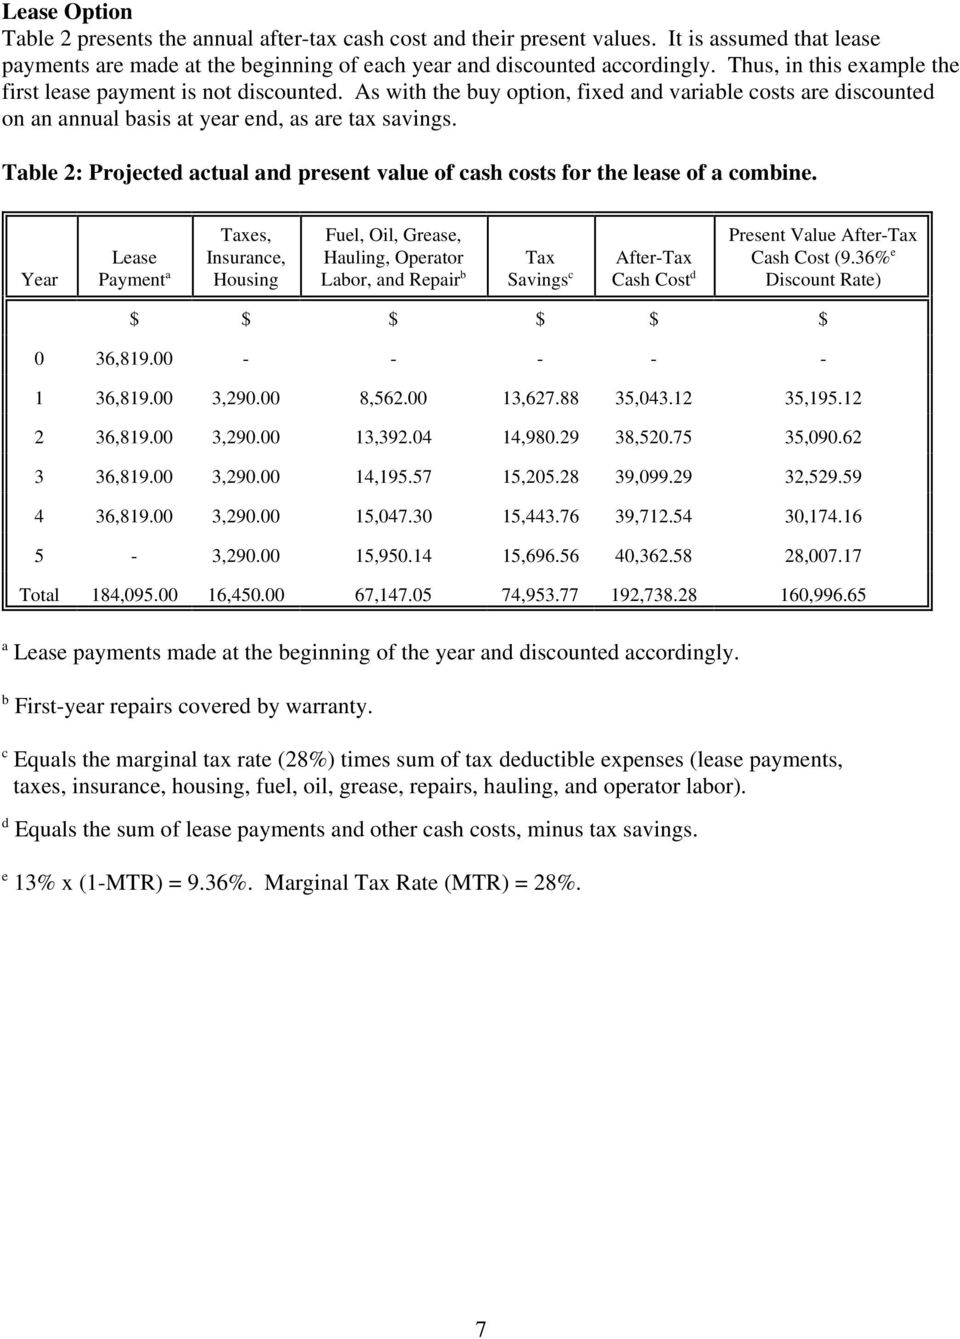 Table 2: Projected actual and present value of cash costs for the lease of a combine.